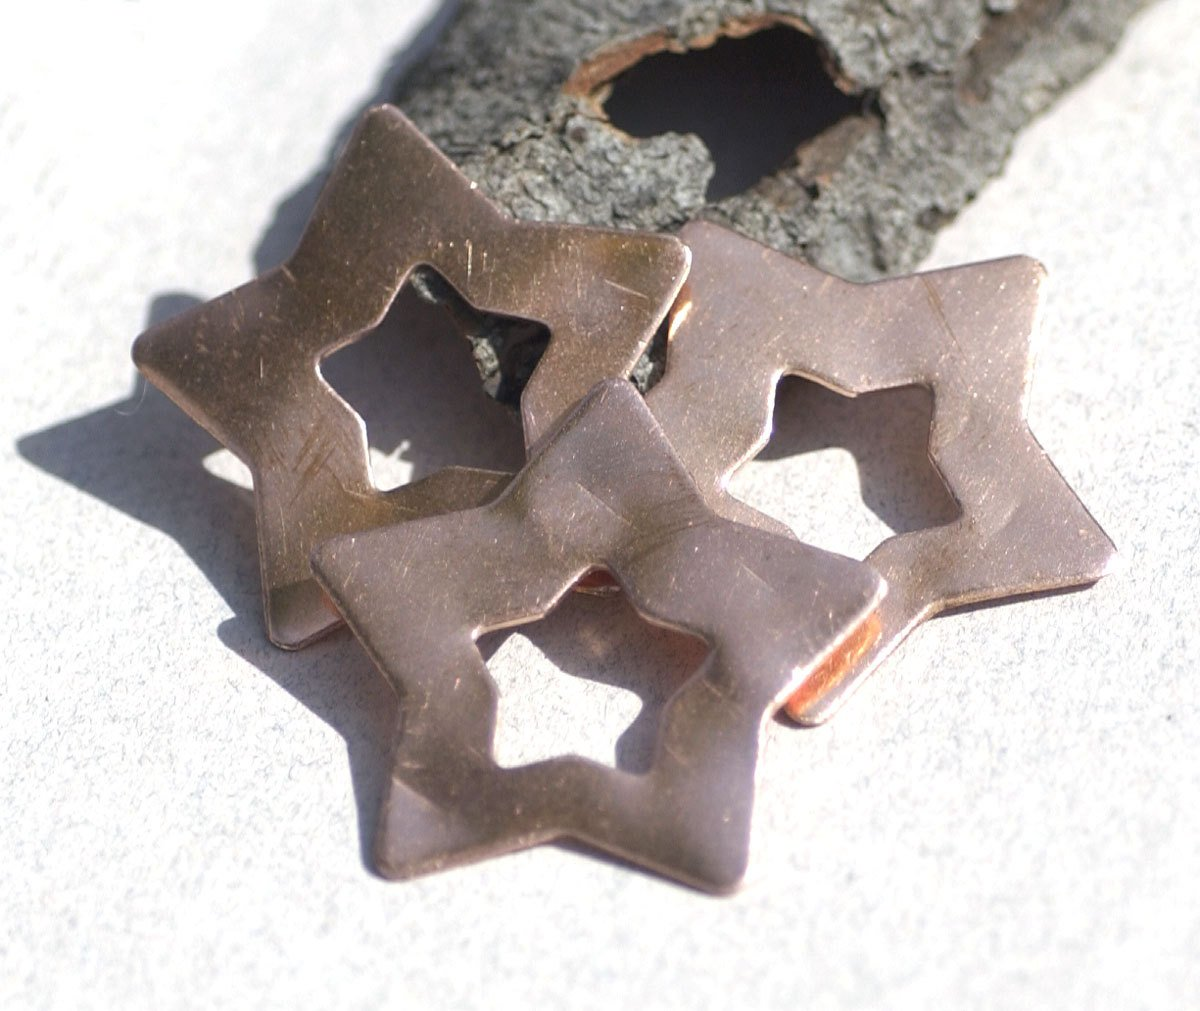 Star with Star 36mm 24g Cutout Blank for Enameling Stamping Texturing Variety of Metals Blanks